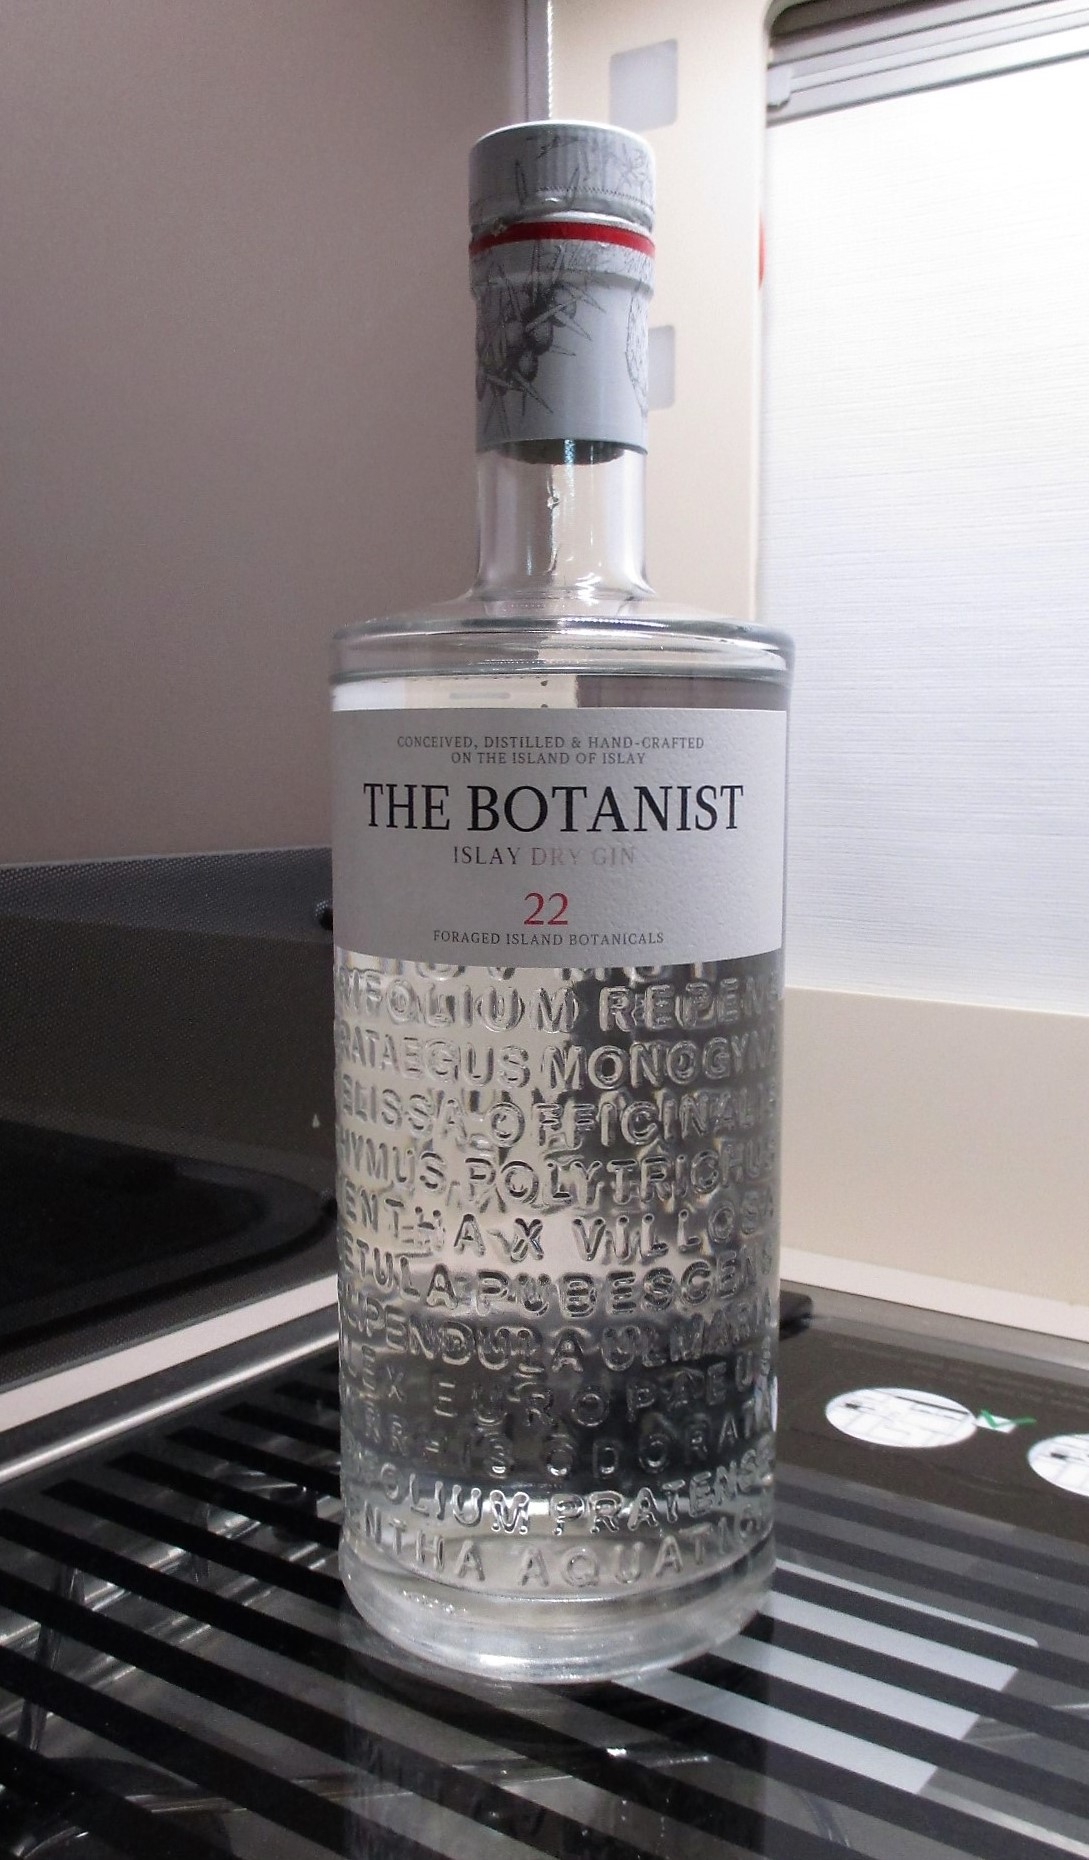 Special Gin from Islay